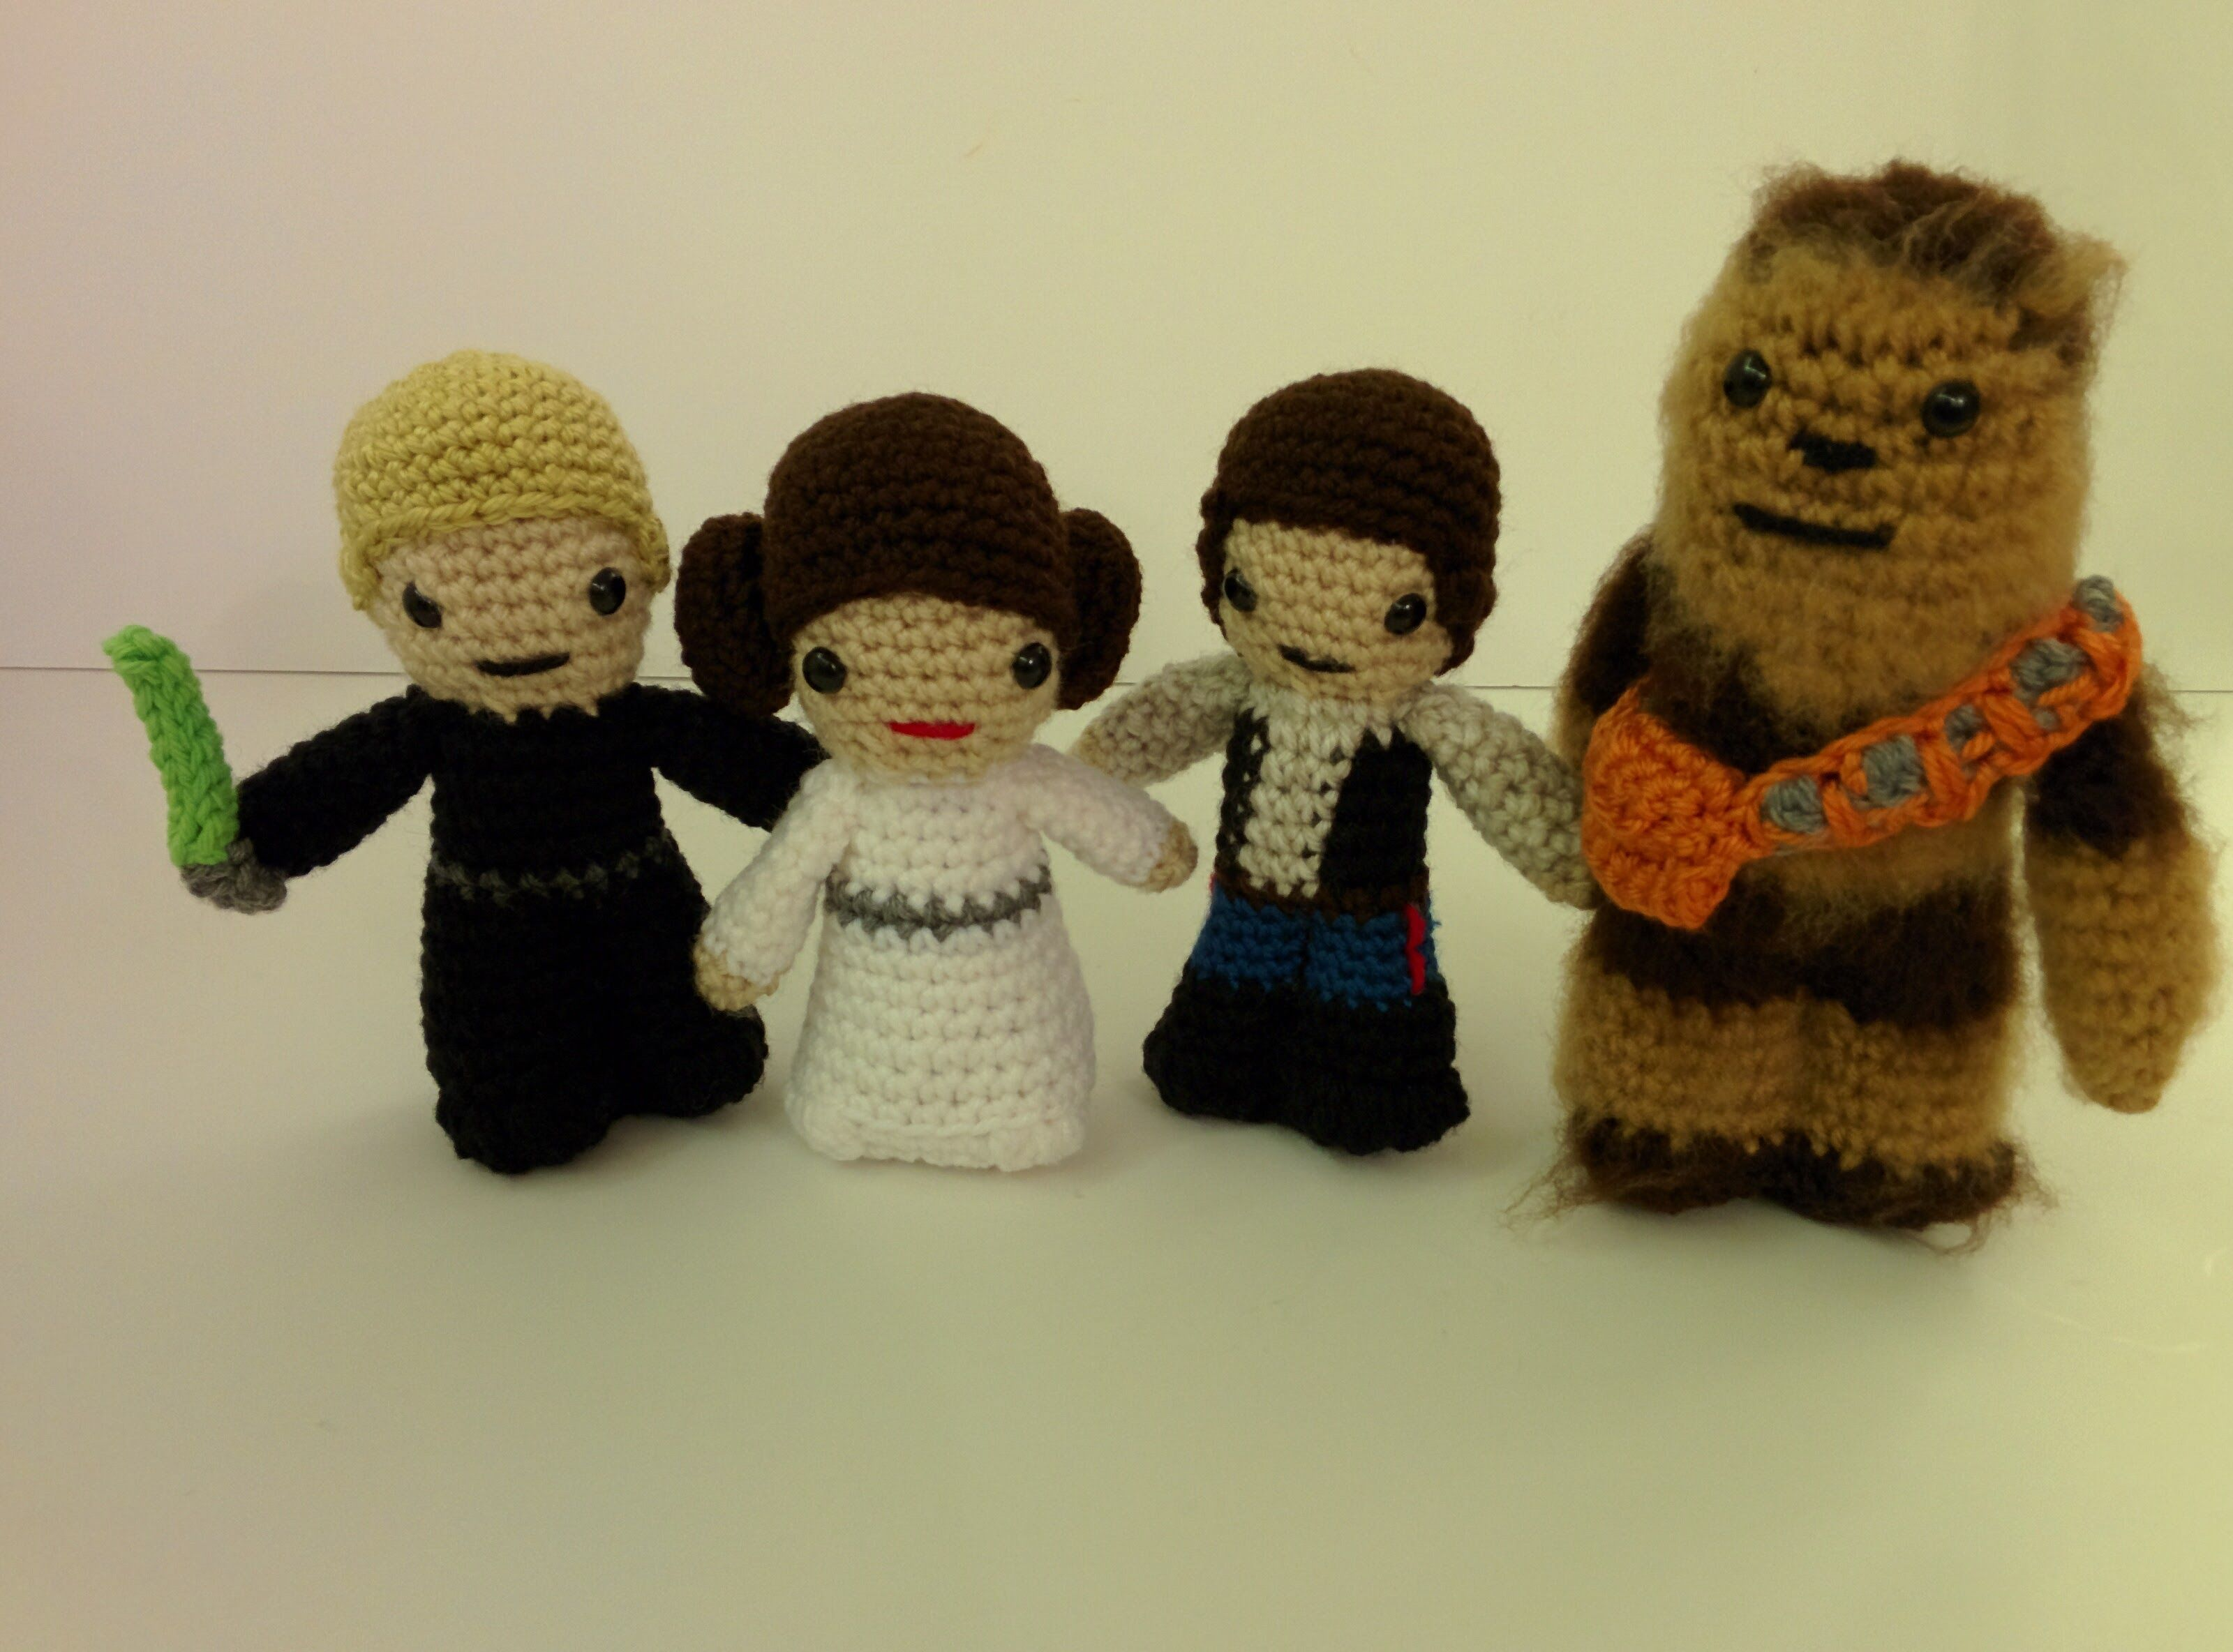 Star Wars crochet part 1 from crochet book kit by Lucy Collins   I ...